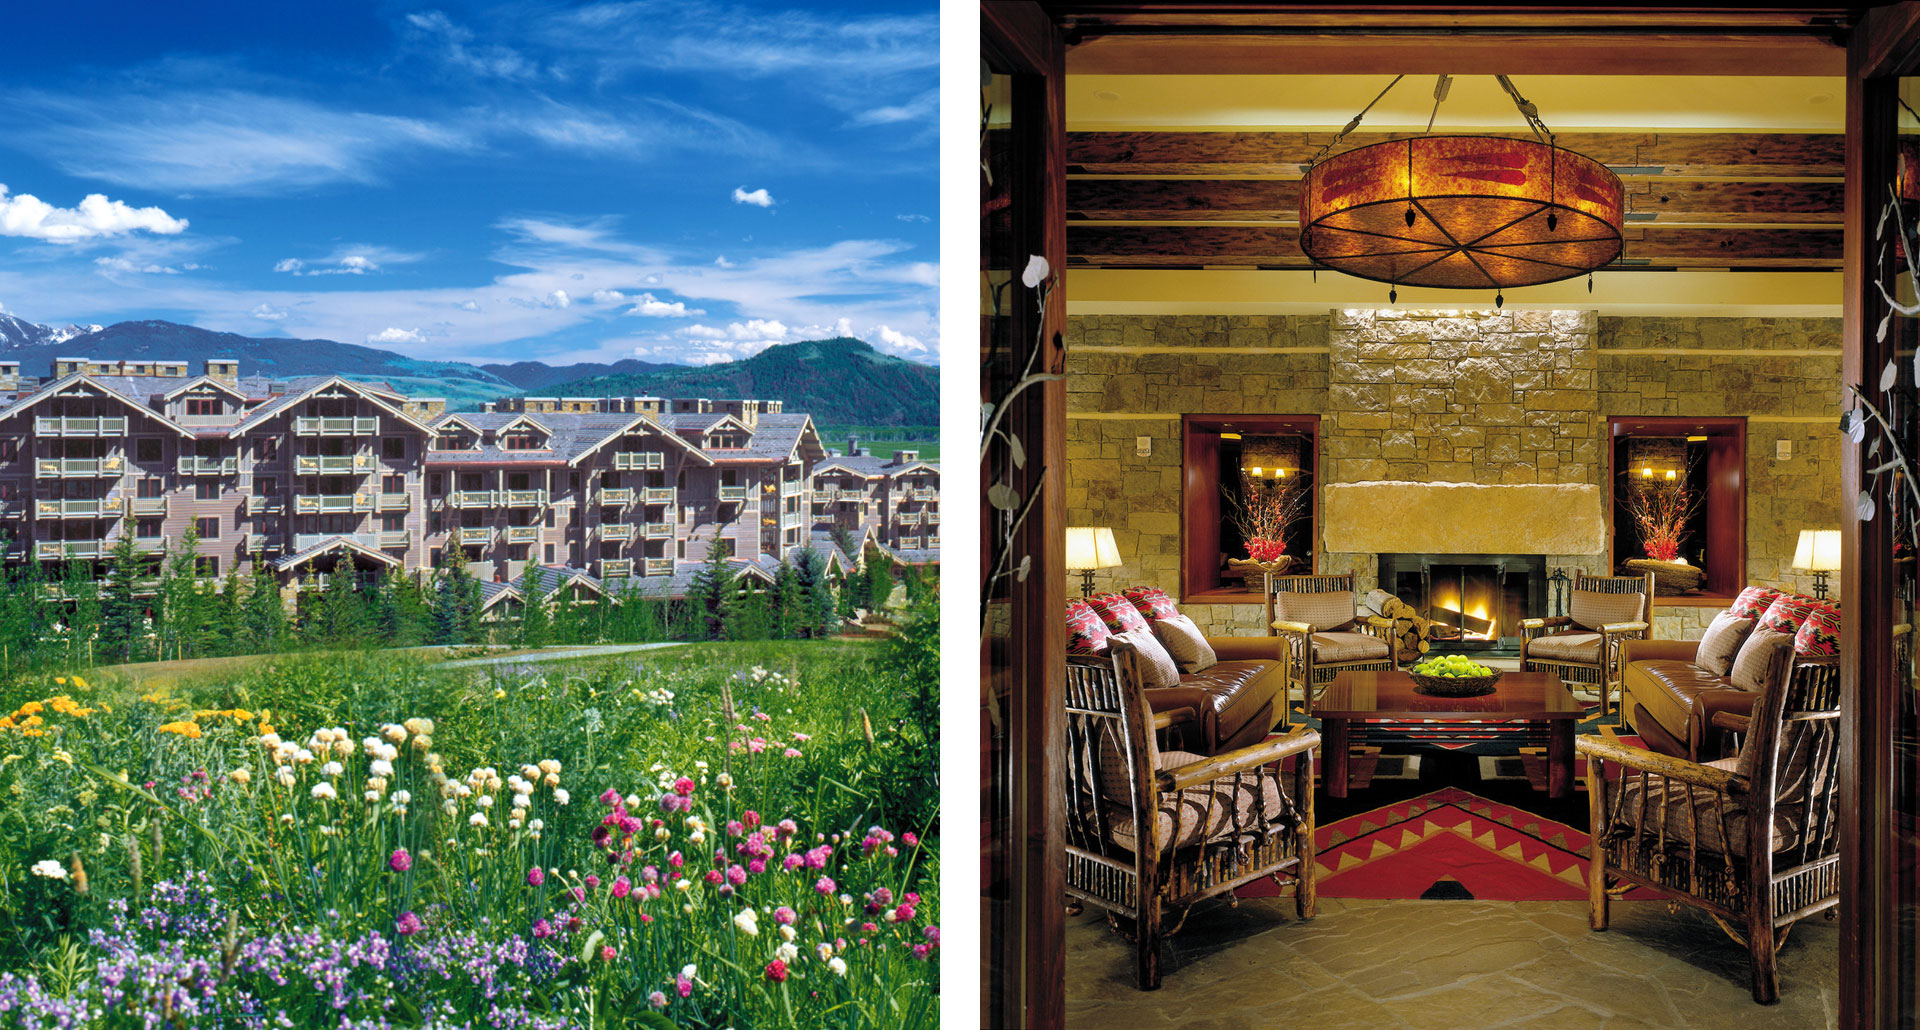 Four Seasons Resort Jackson Hole - boutique hotel in Jackson